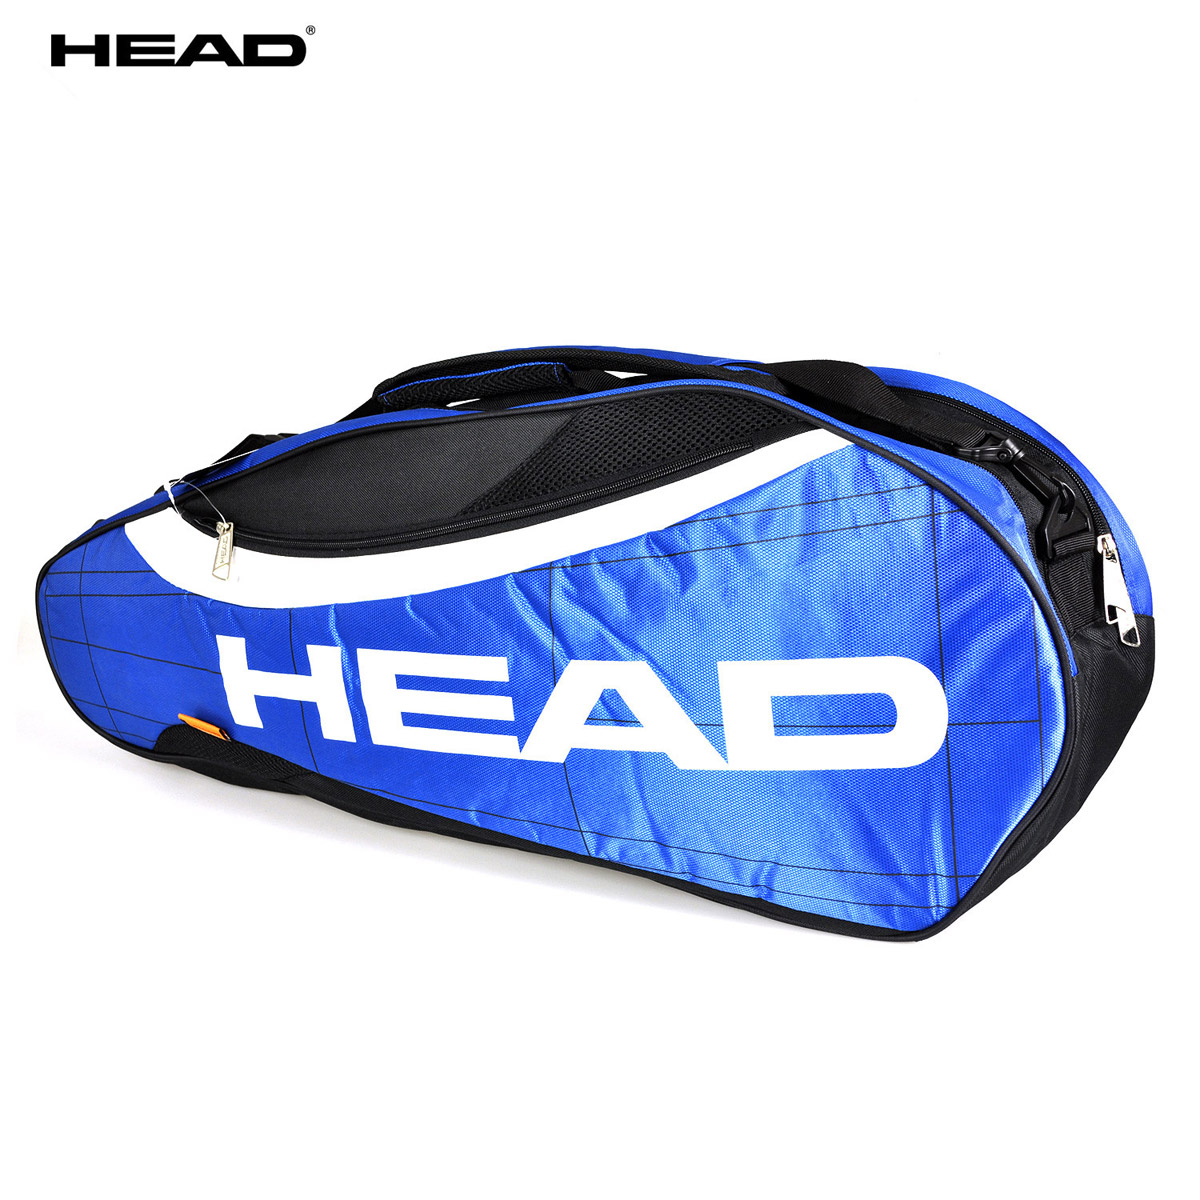 Special offer free shipping [head/hyde] genuine six loaded single shoulder backpack badminton racket bag multifunction bag